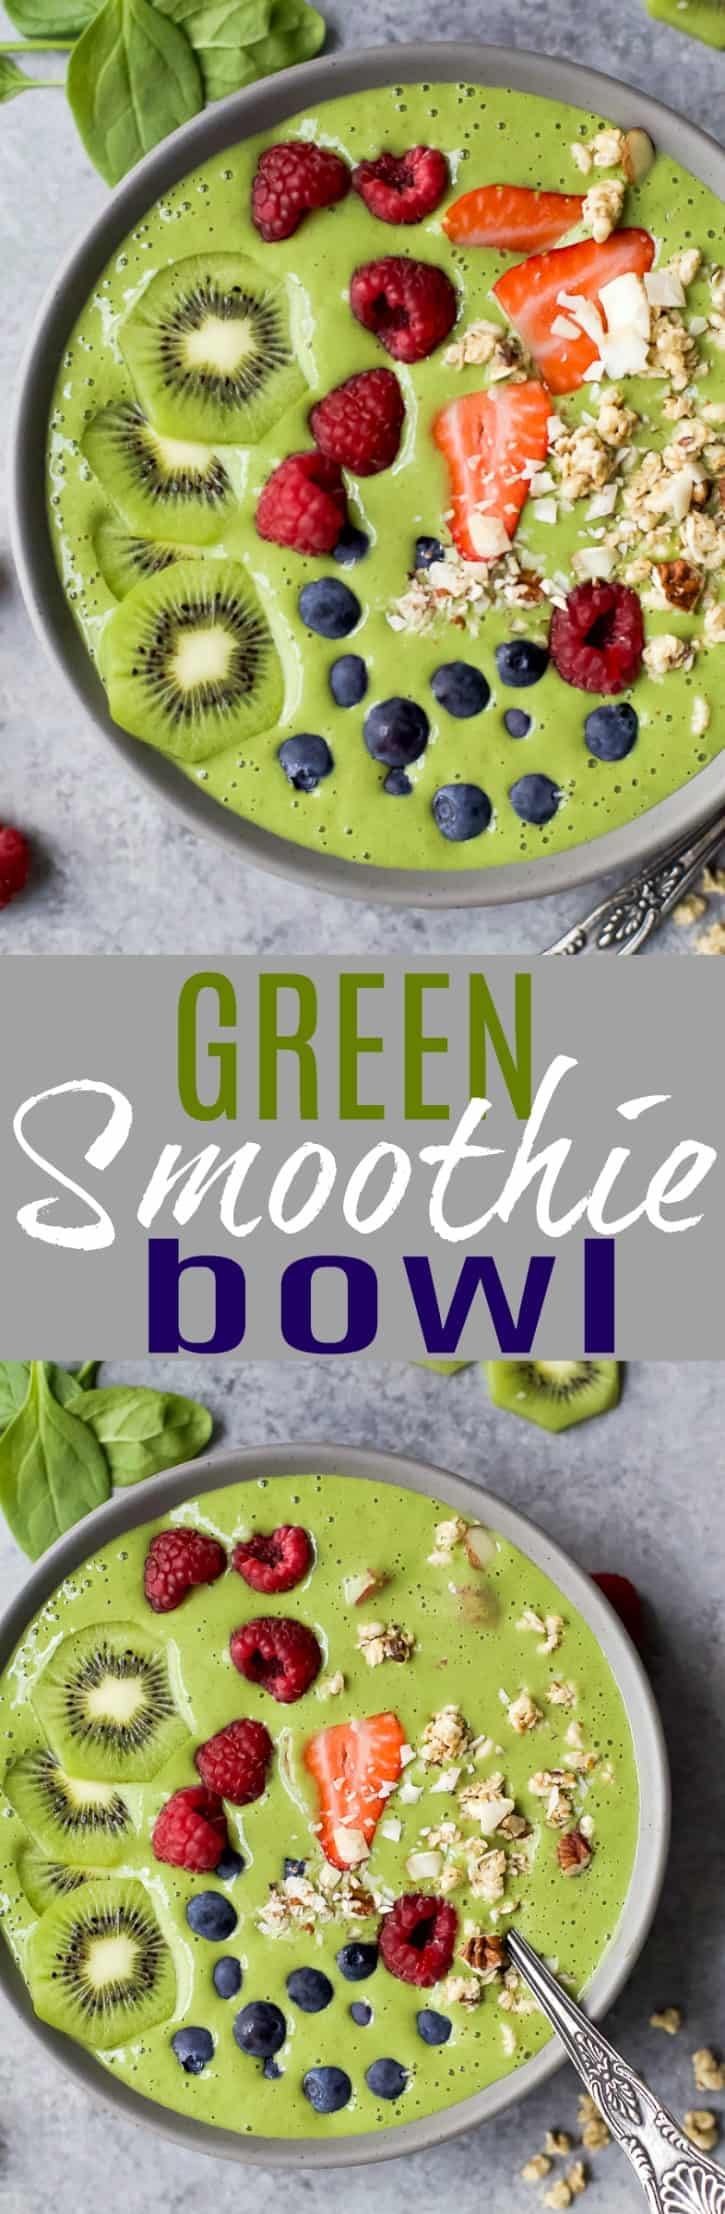 A delicious fiber packed Green Smoothie Bowl you can easily customize. The perfect healthy breakfast, lunch or post workout snack! #glutenfree